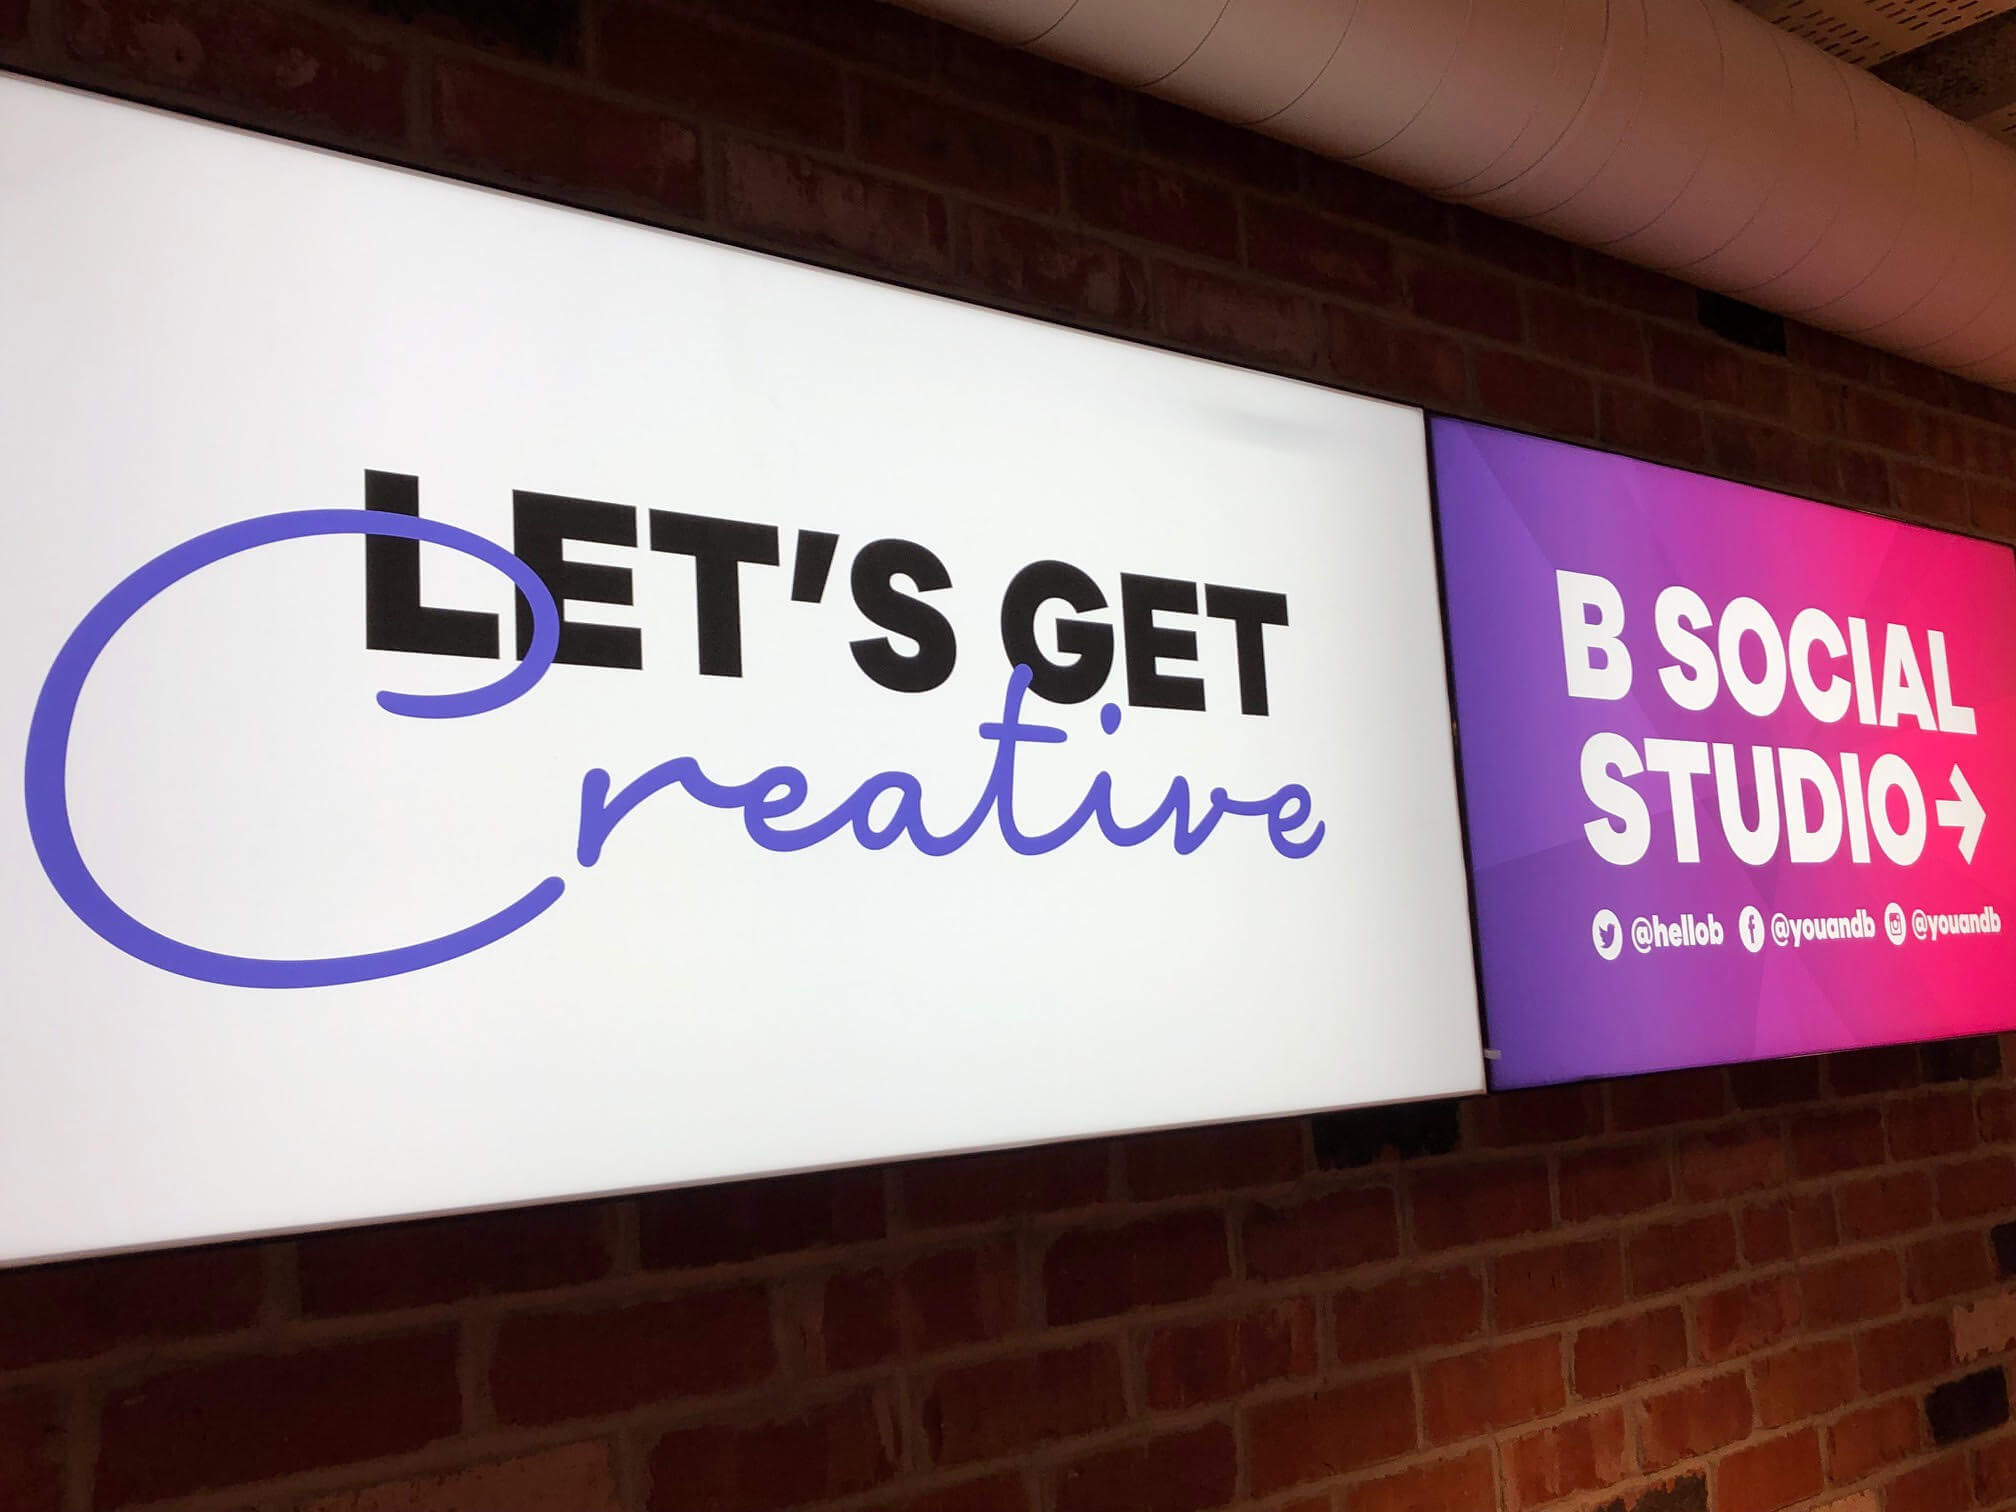 Let's Get Creative at the Social Studio at B Works Manchester